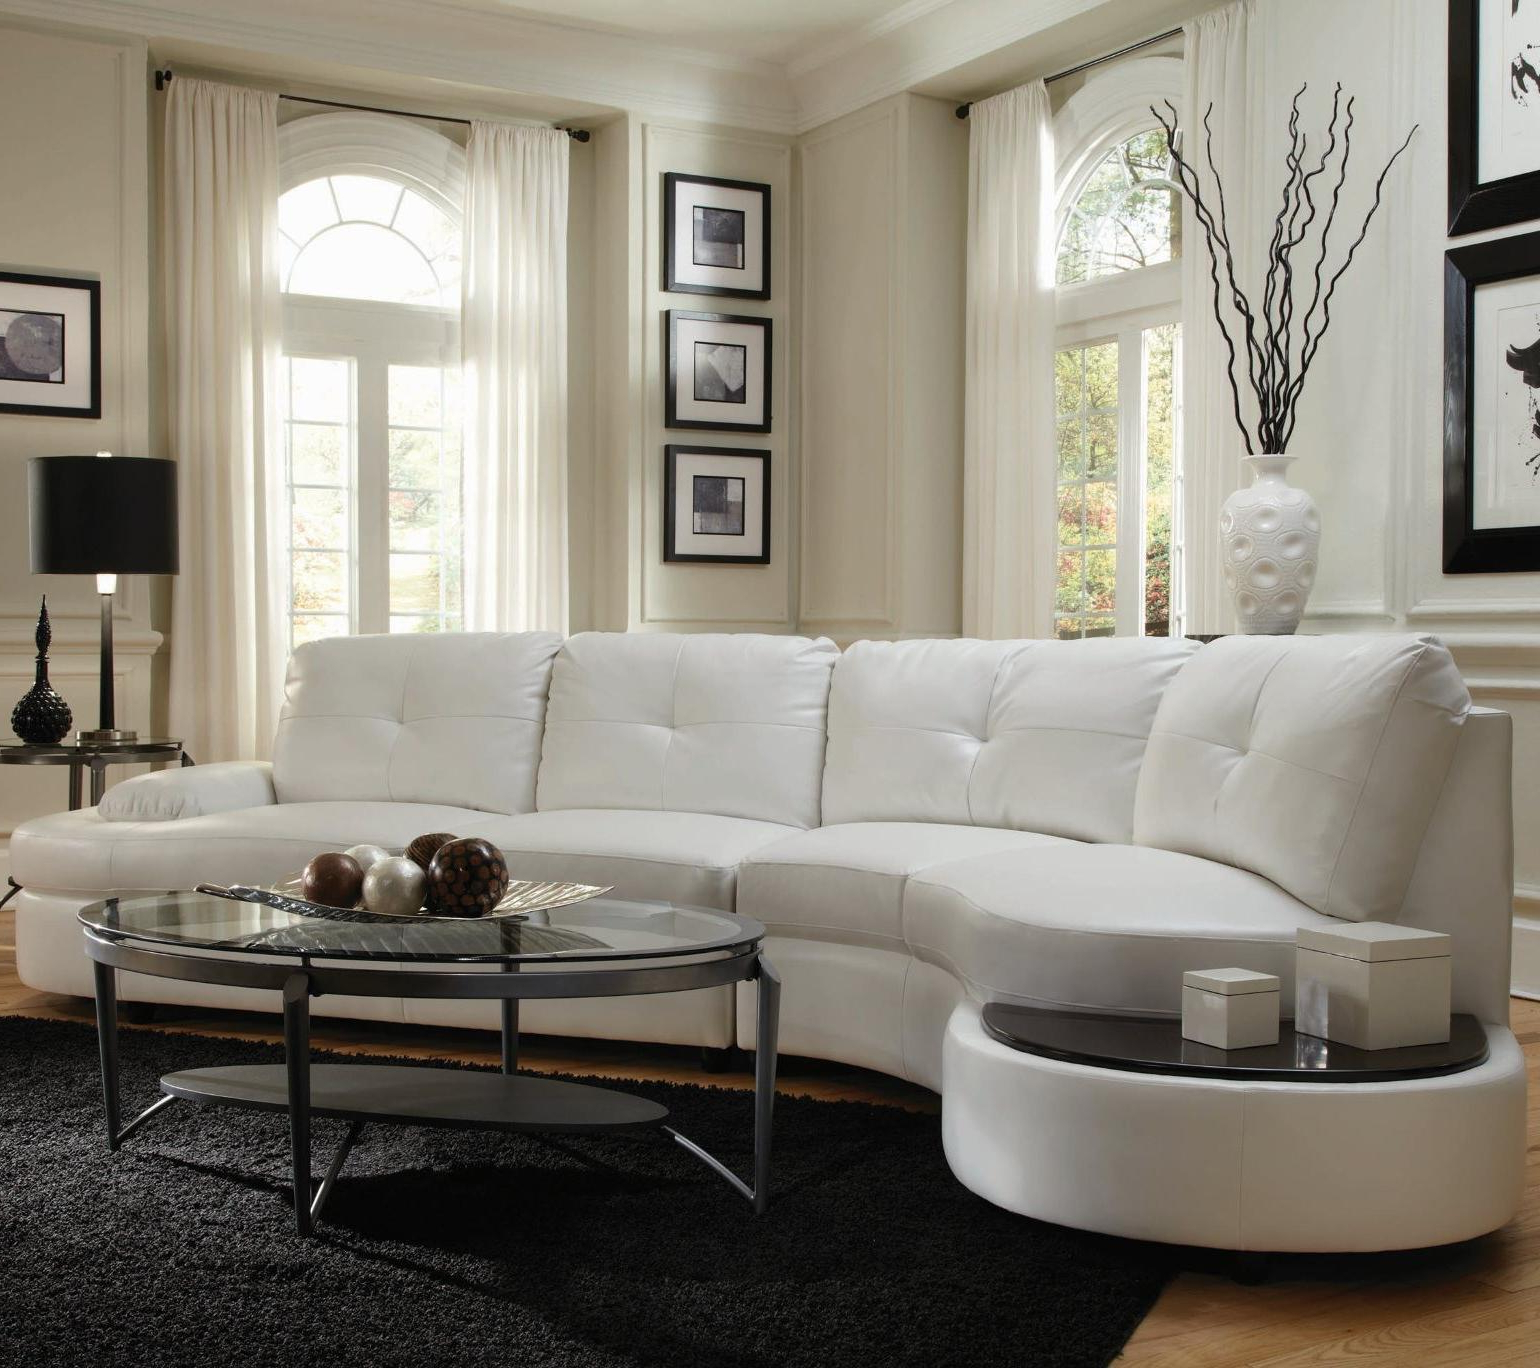 Well Liked Talia Contemporary Sectional Conversation Sofa With Built In Table Pertaining To Contemporary Curves Coffee Tables (View 20 of 20)